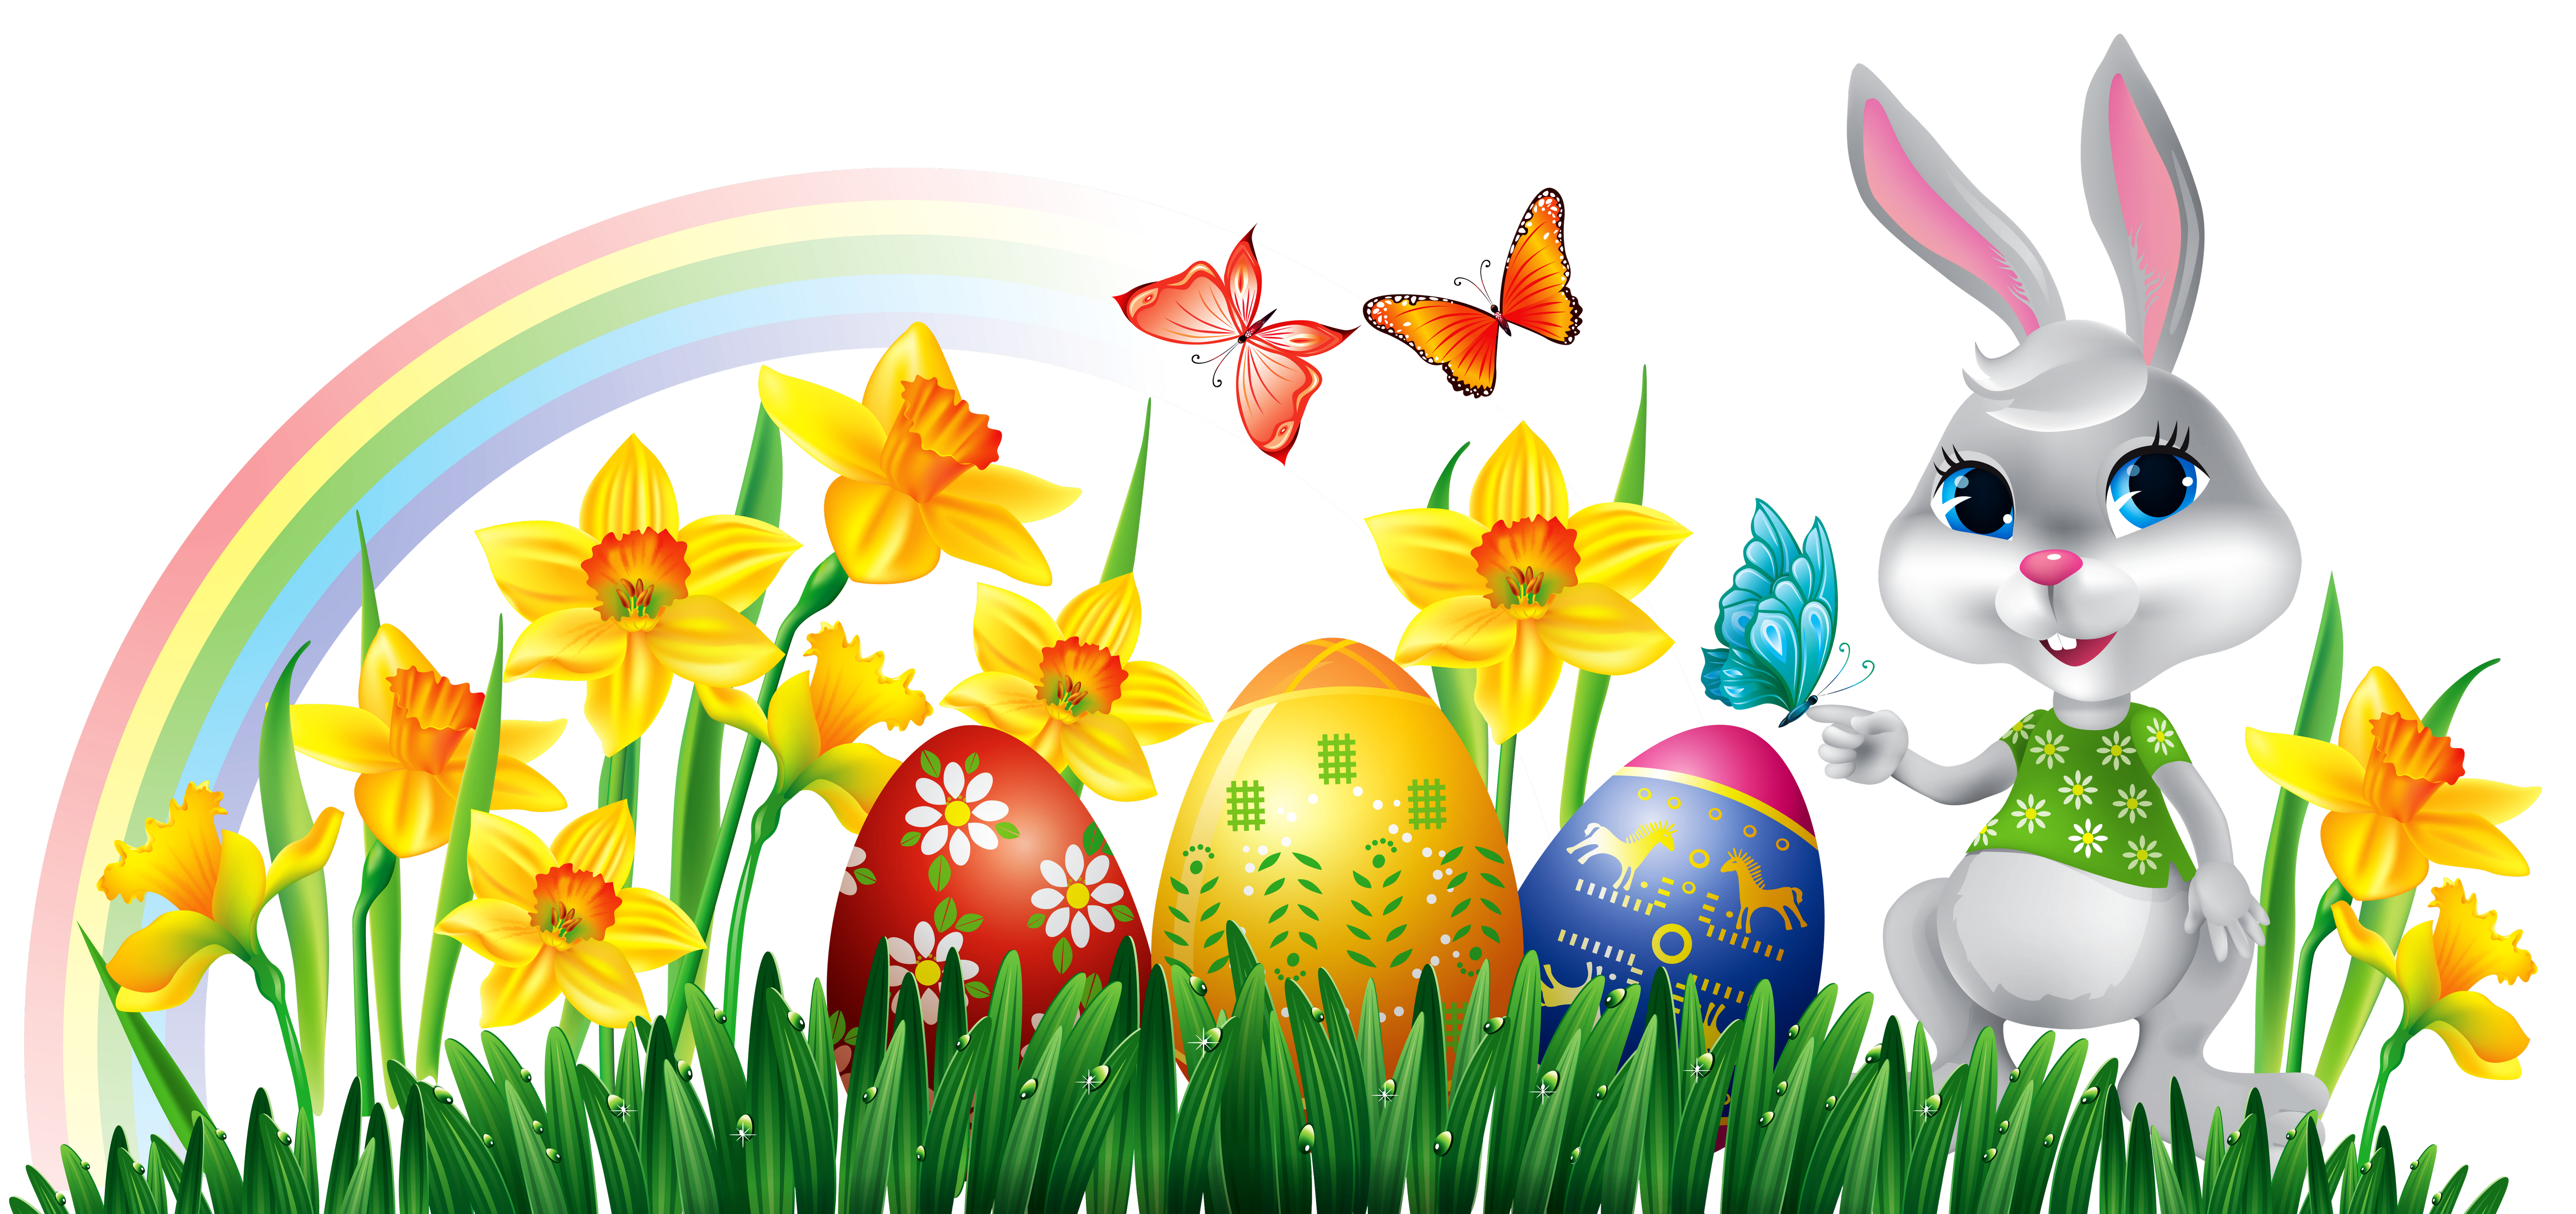 Happy Easter Colorful Ggs , Bunny ,flowers, Butterflies Hd Wallpapers Free  Download - Easter HD PNG